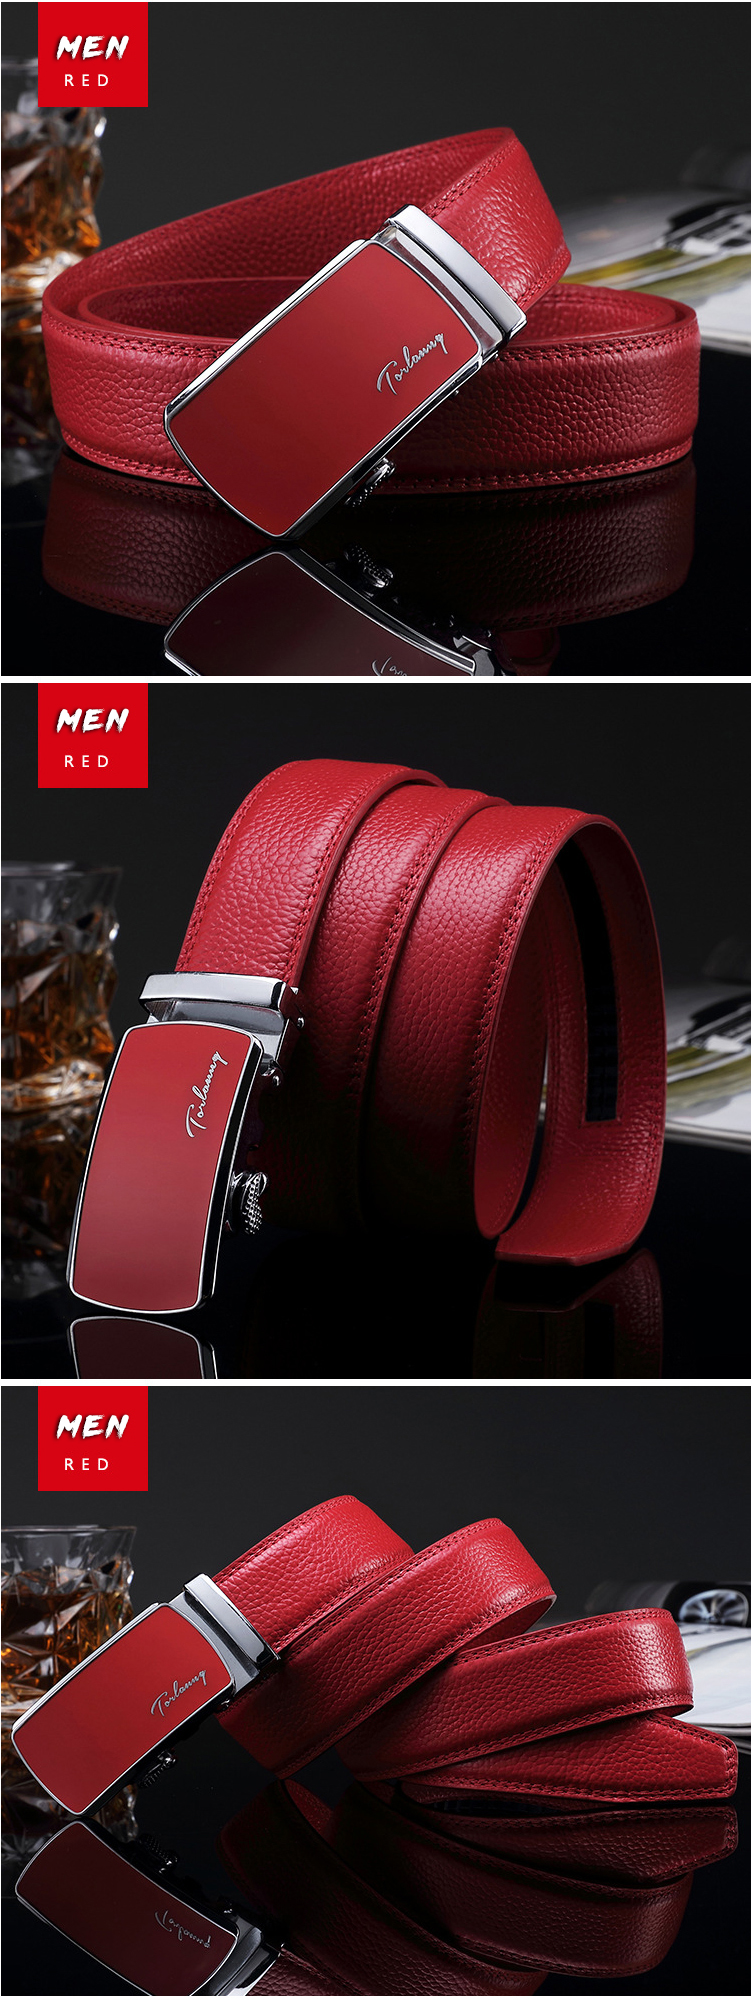 (4)Designer Weddin for Men Belts Genuine Leather Famous Brand Automatic Buckle Female Belt Red Strap Luxury Womens Belt Male